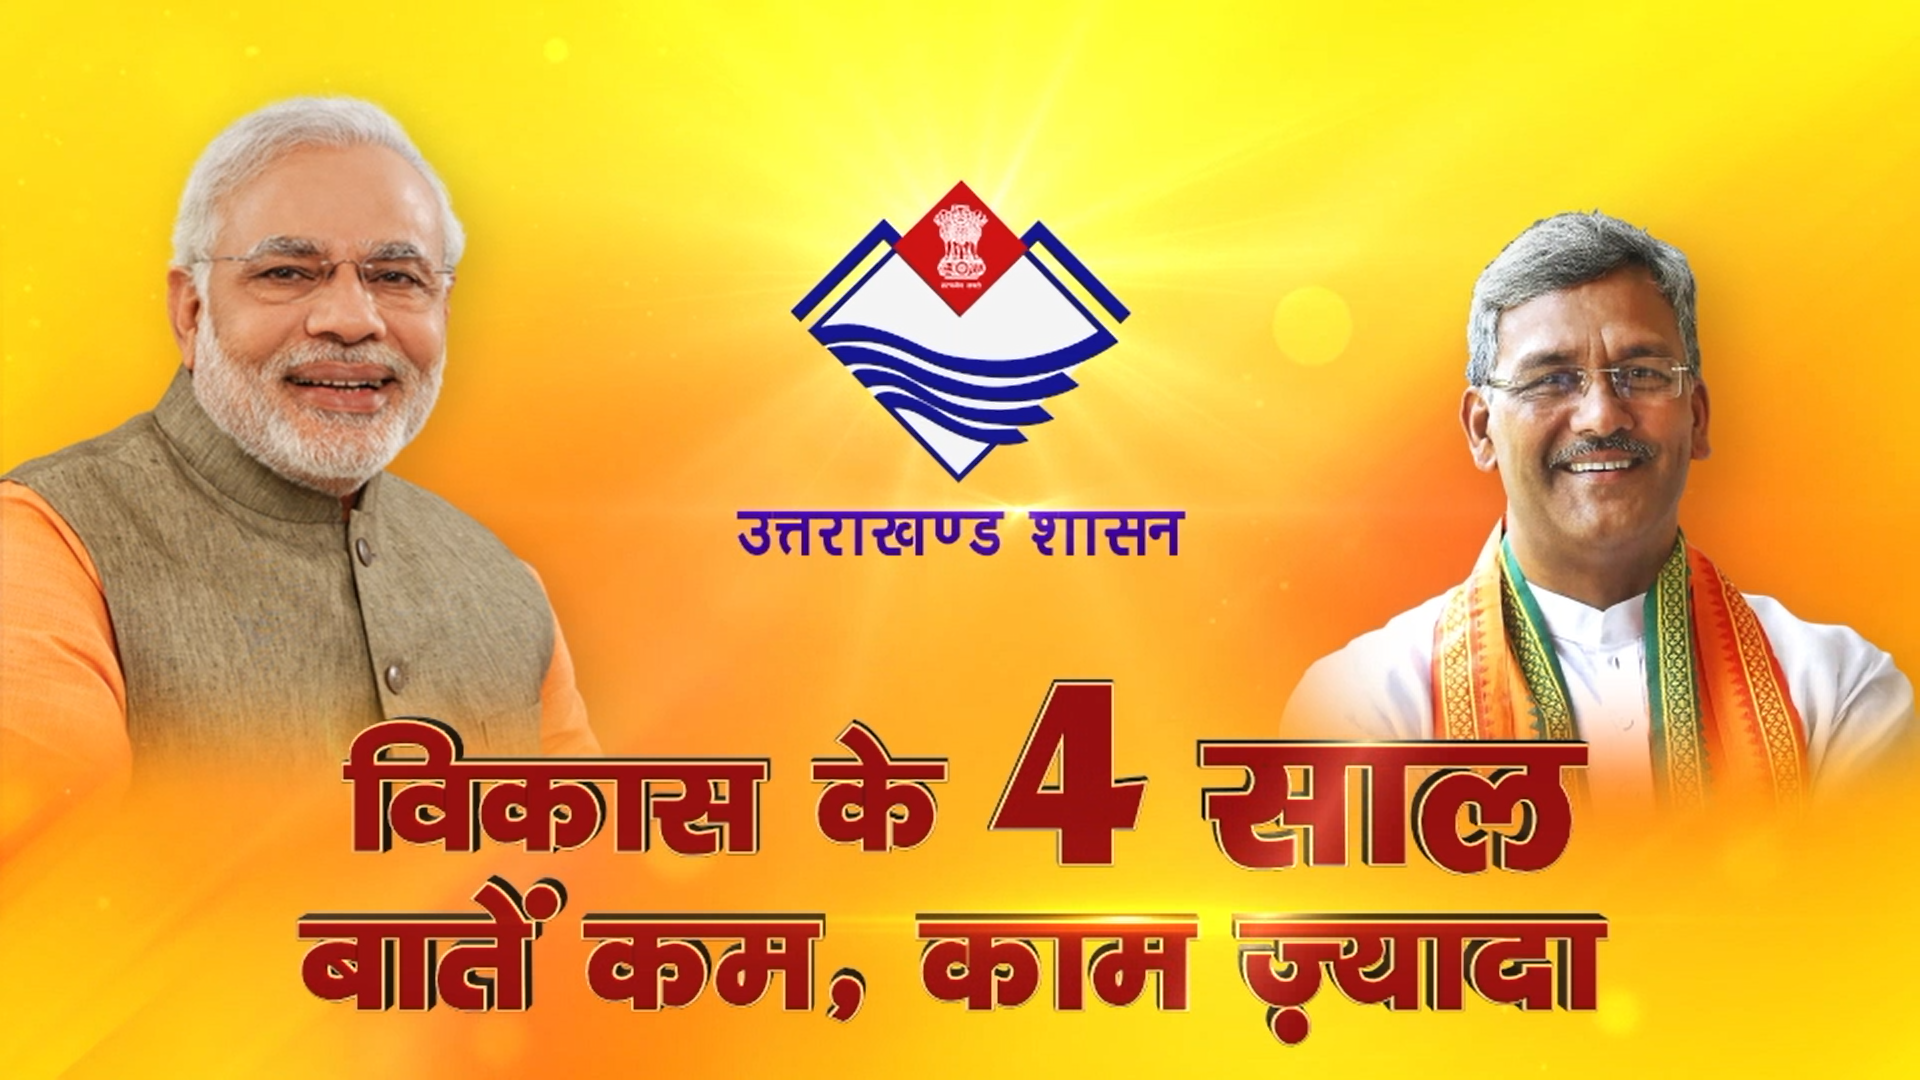 vikas ke 4 saal - video 3